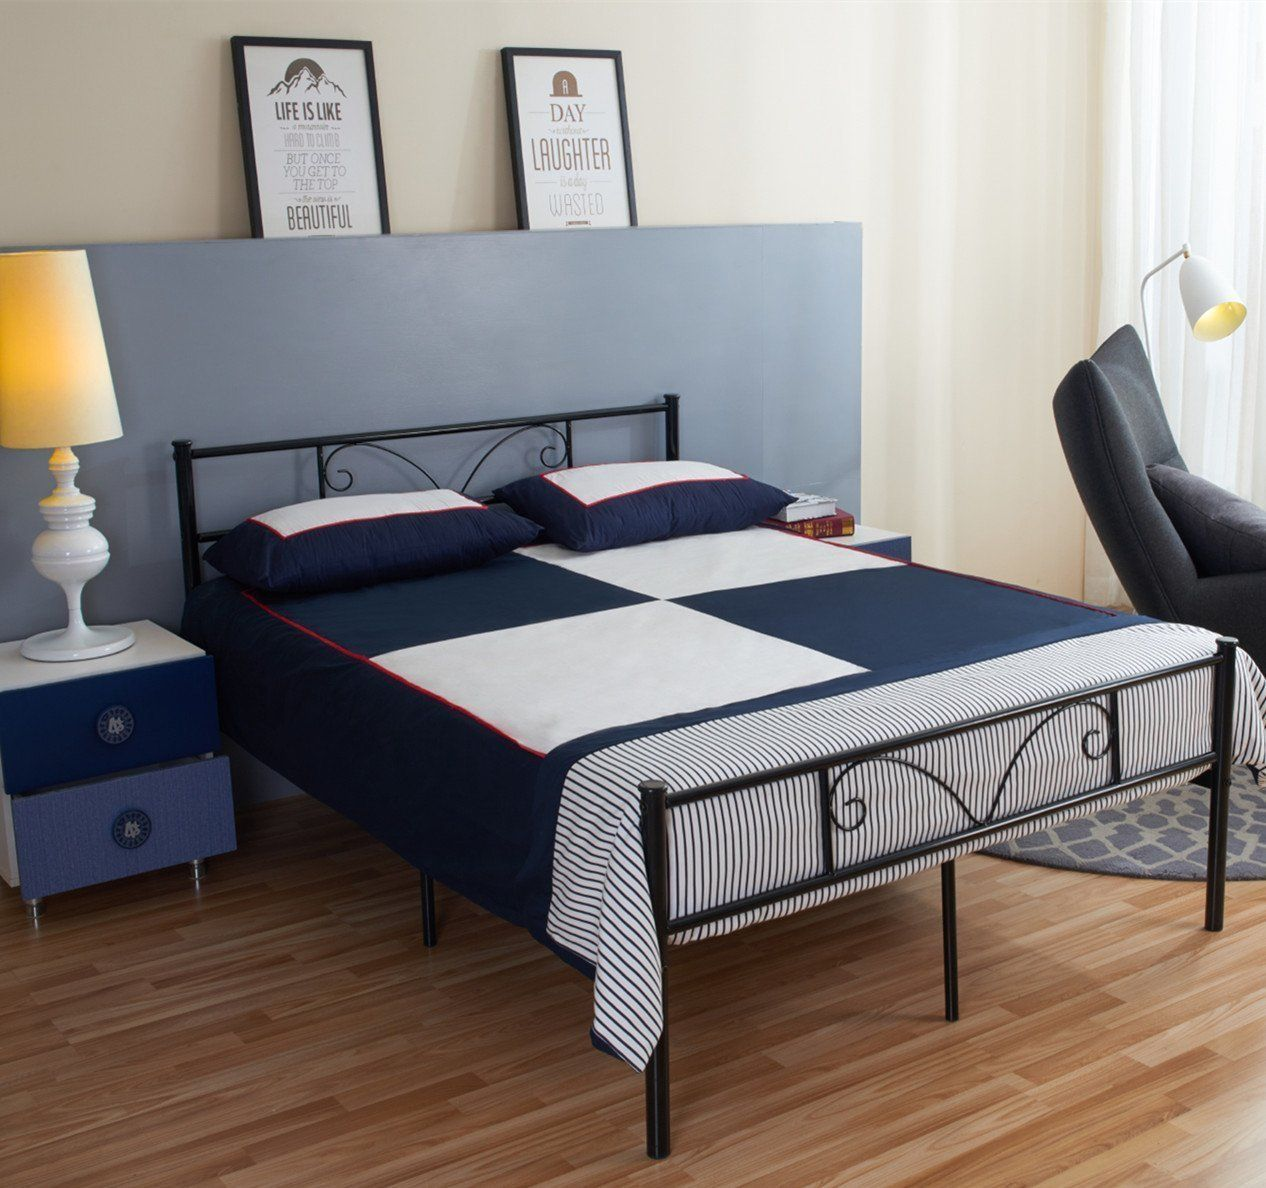 Top 10 Best Full Size Metals Review Bed frame, Full